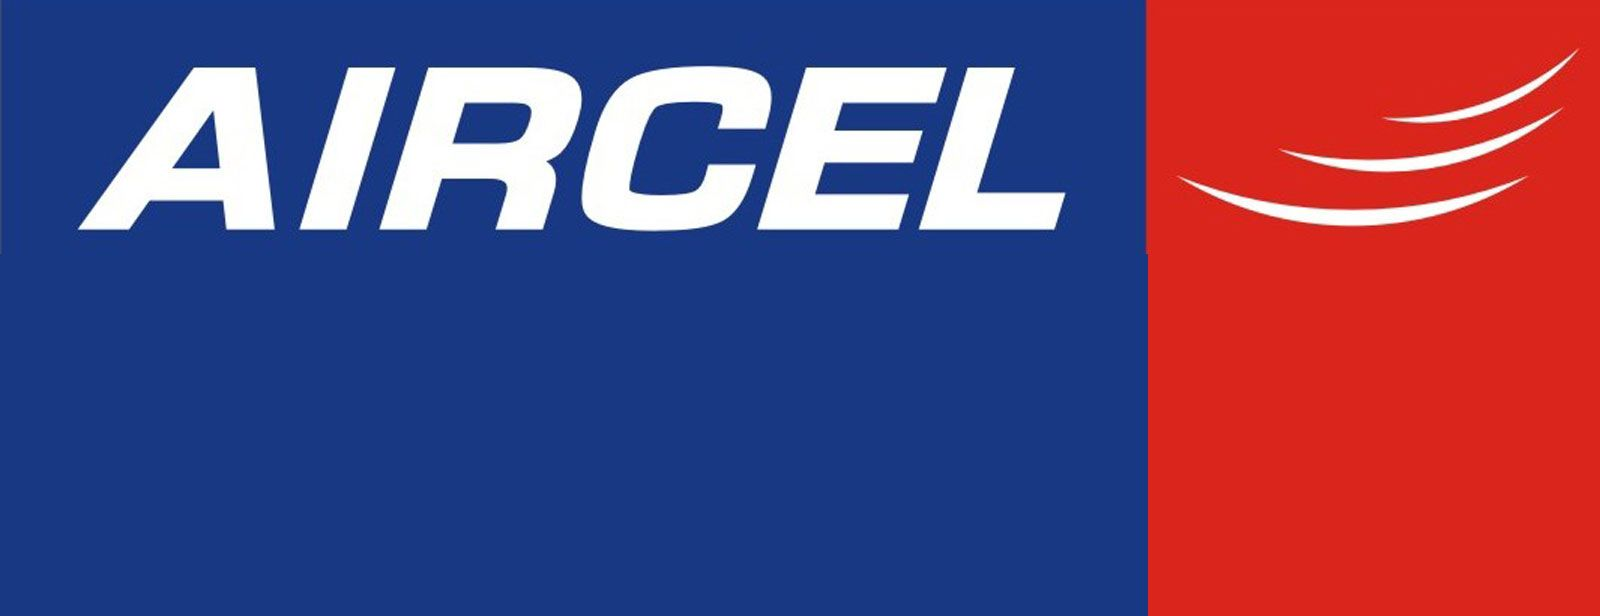 Aircel Customer Care Number Toll Free Helpline Technical Service Support Email Address Information Here